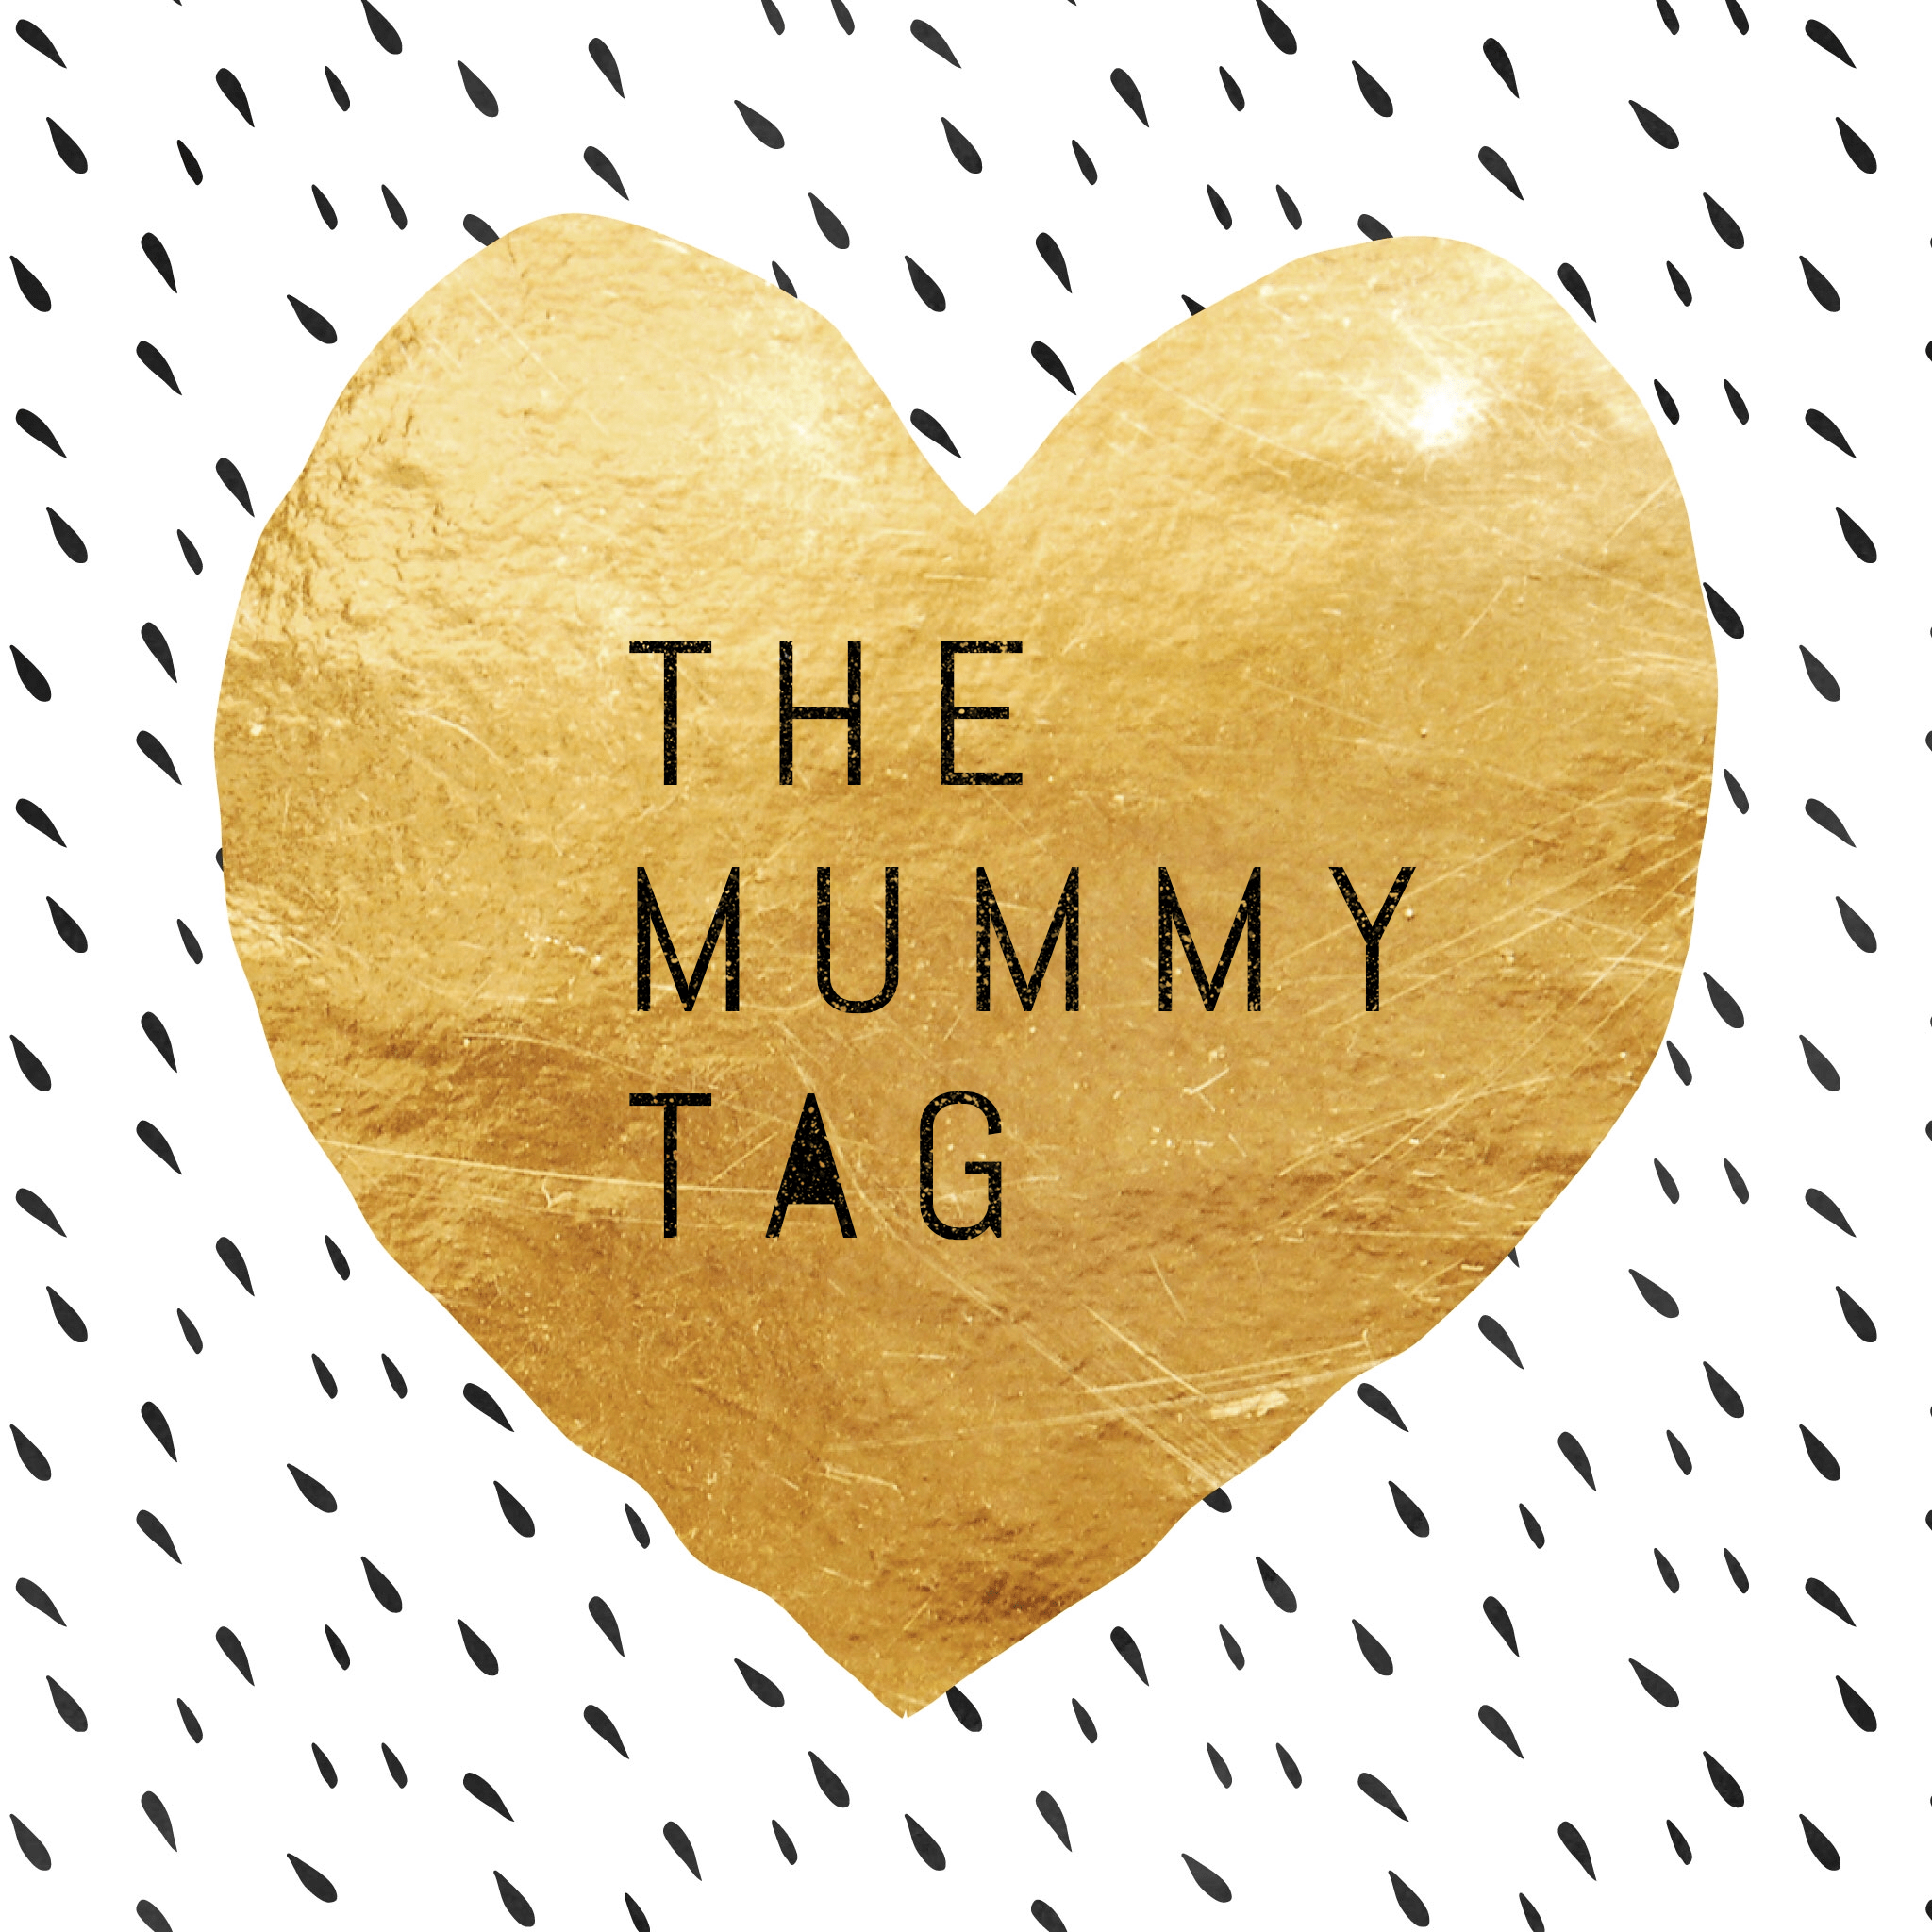 The Mummy Tag